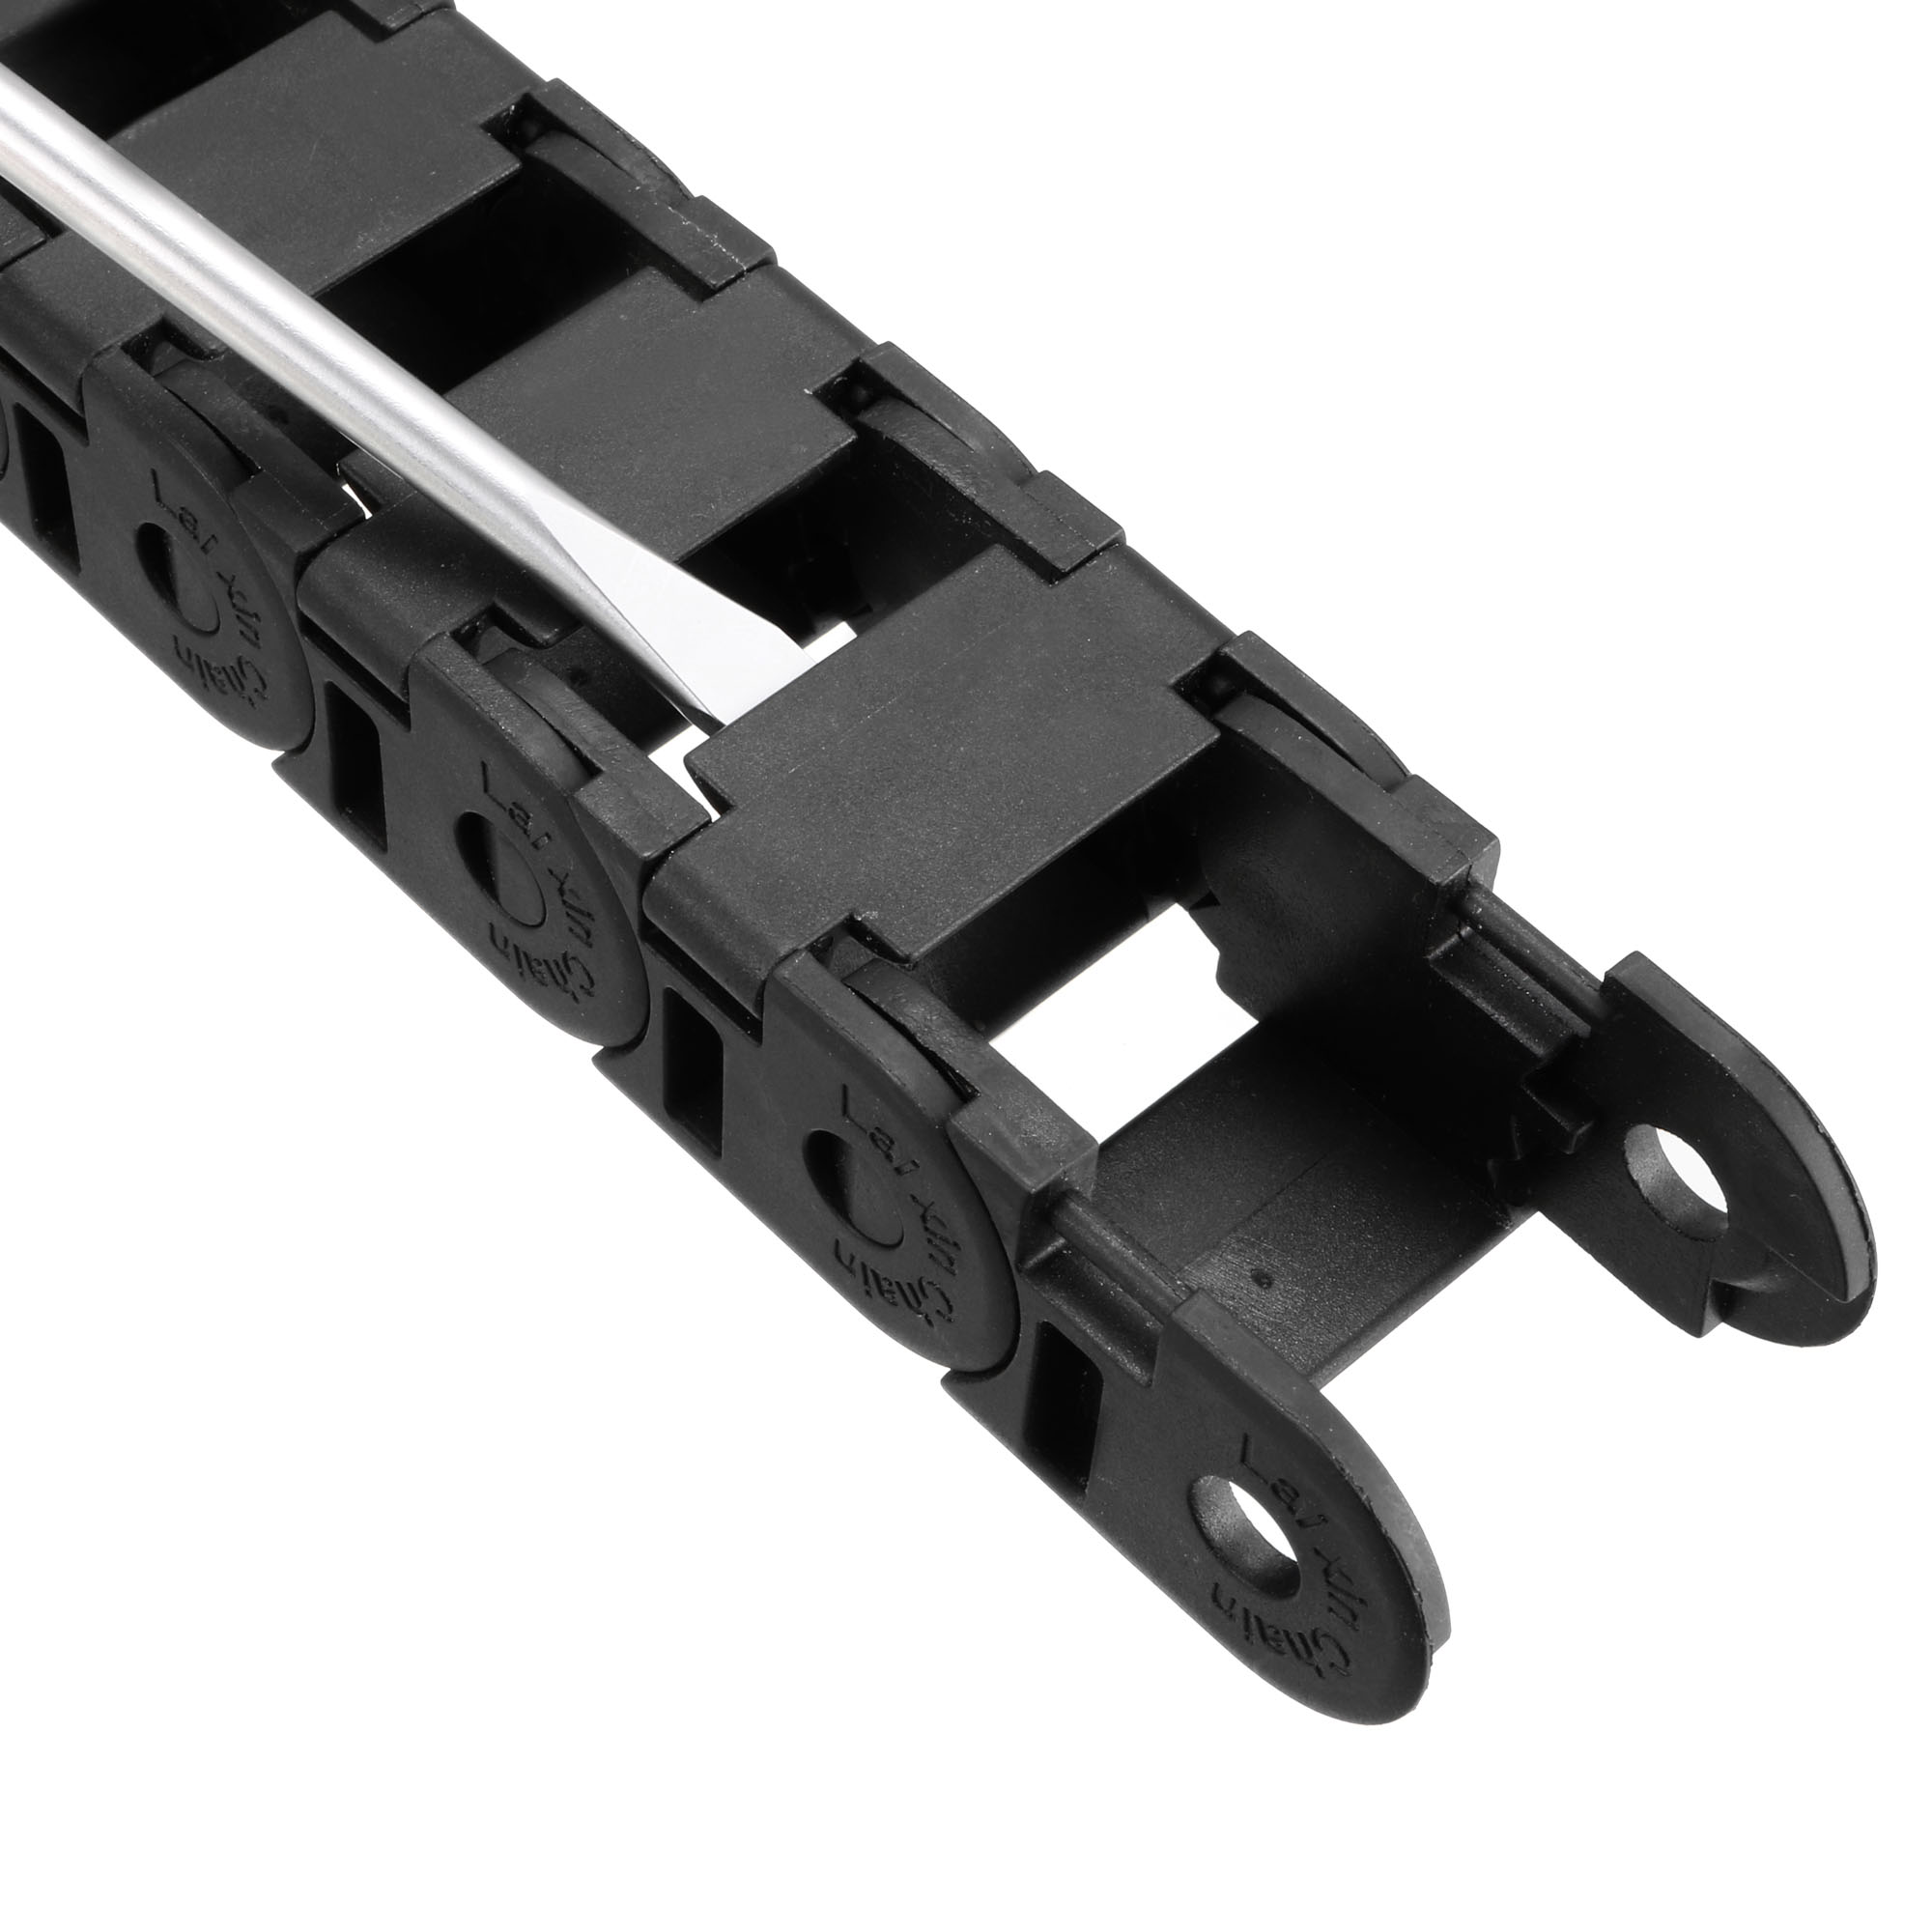 Drag Chain Cable Carrier Open Type with End Connectors R38 18X25mm 1 Meter Plastic for Electrical CNC Router Machines Bl - image 2 de 5